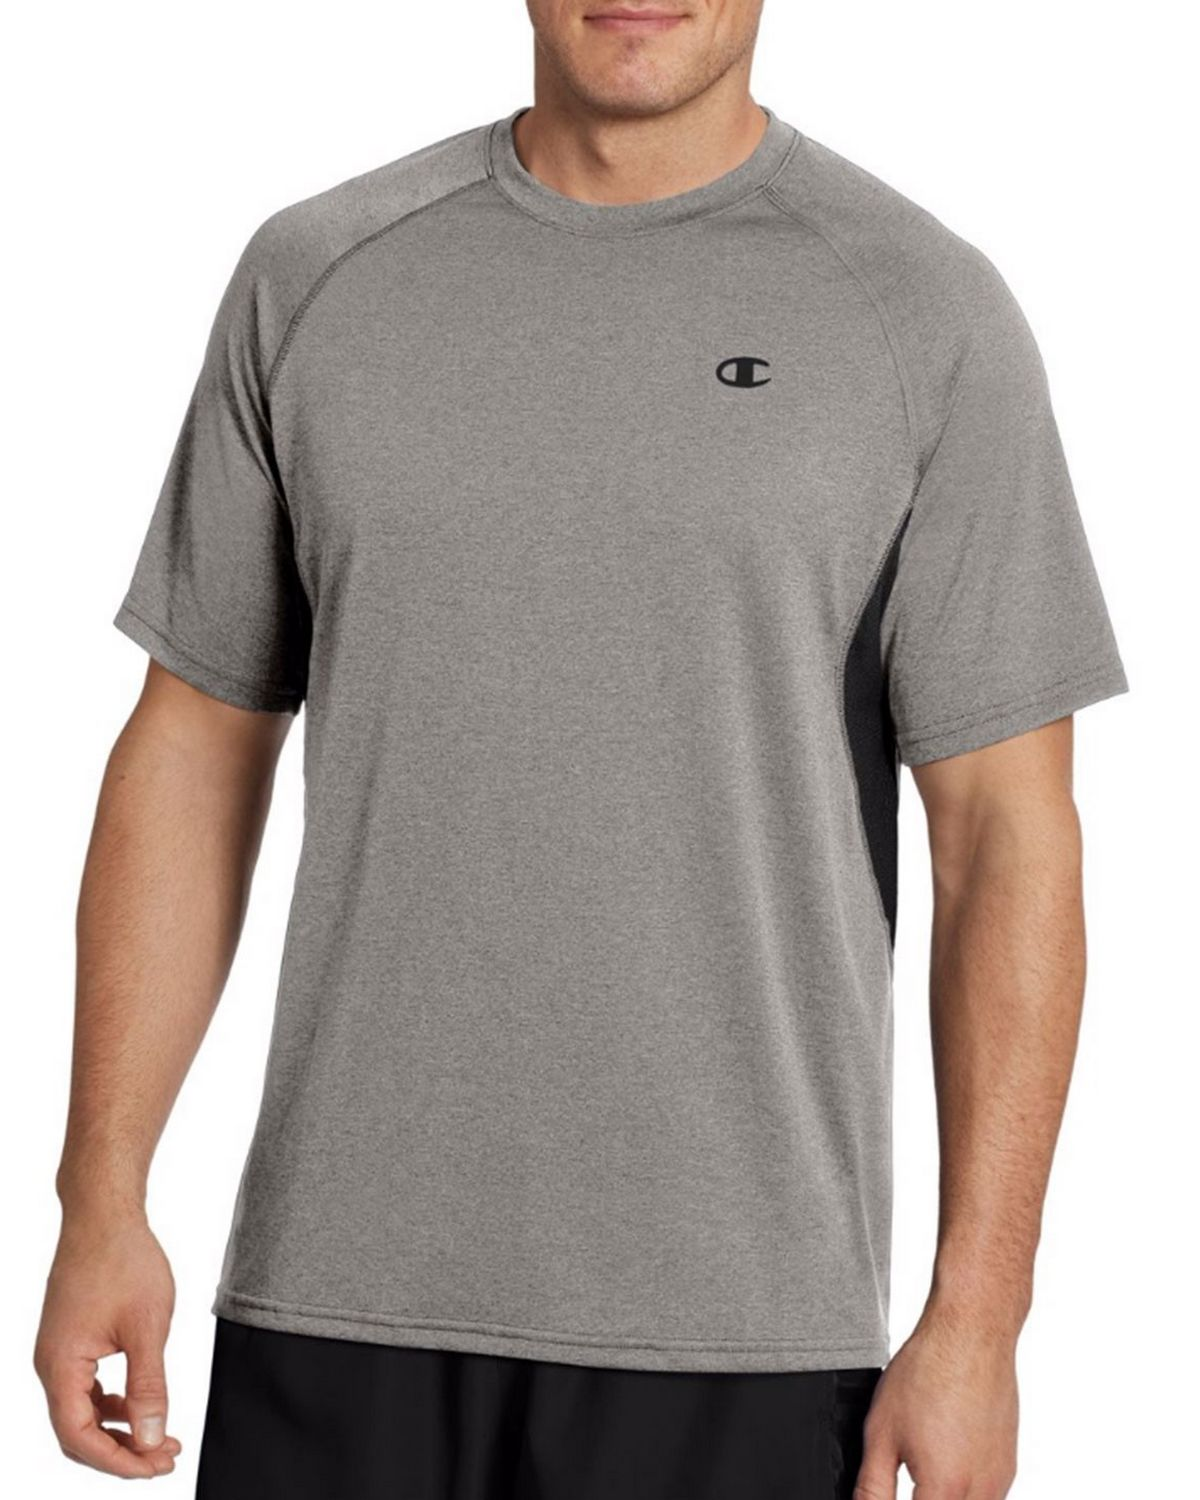 Champion T0049 Vapor Mens Heather Tee - Oxford Grey/Black - XL T0049